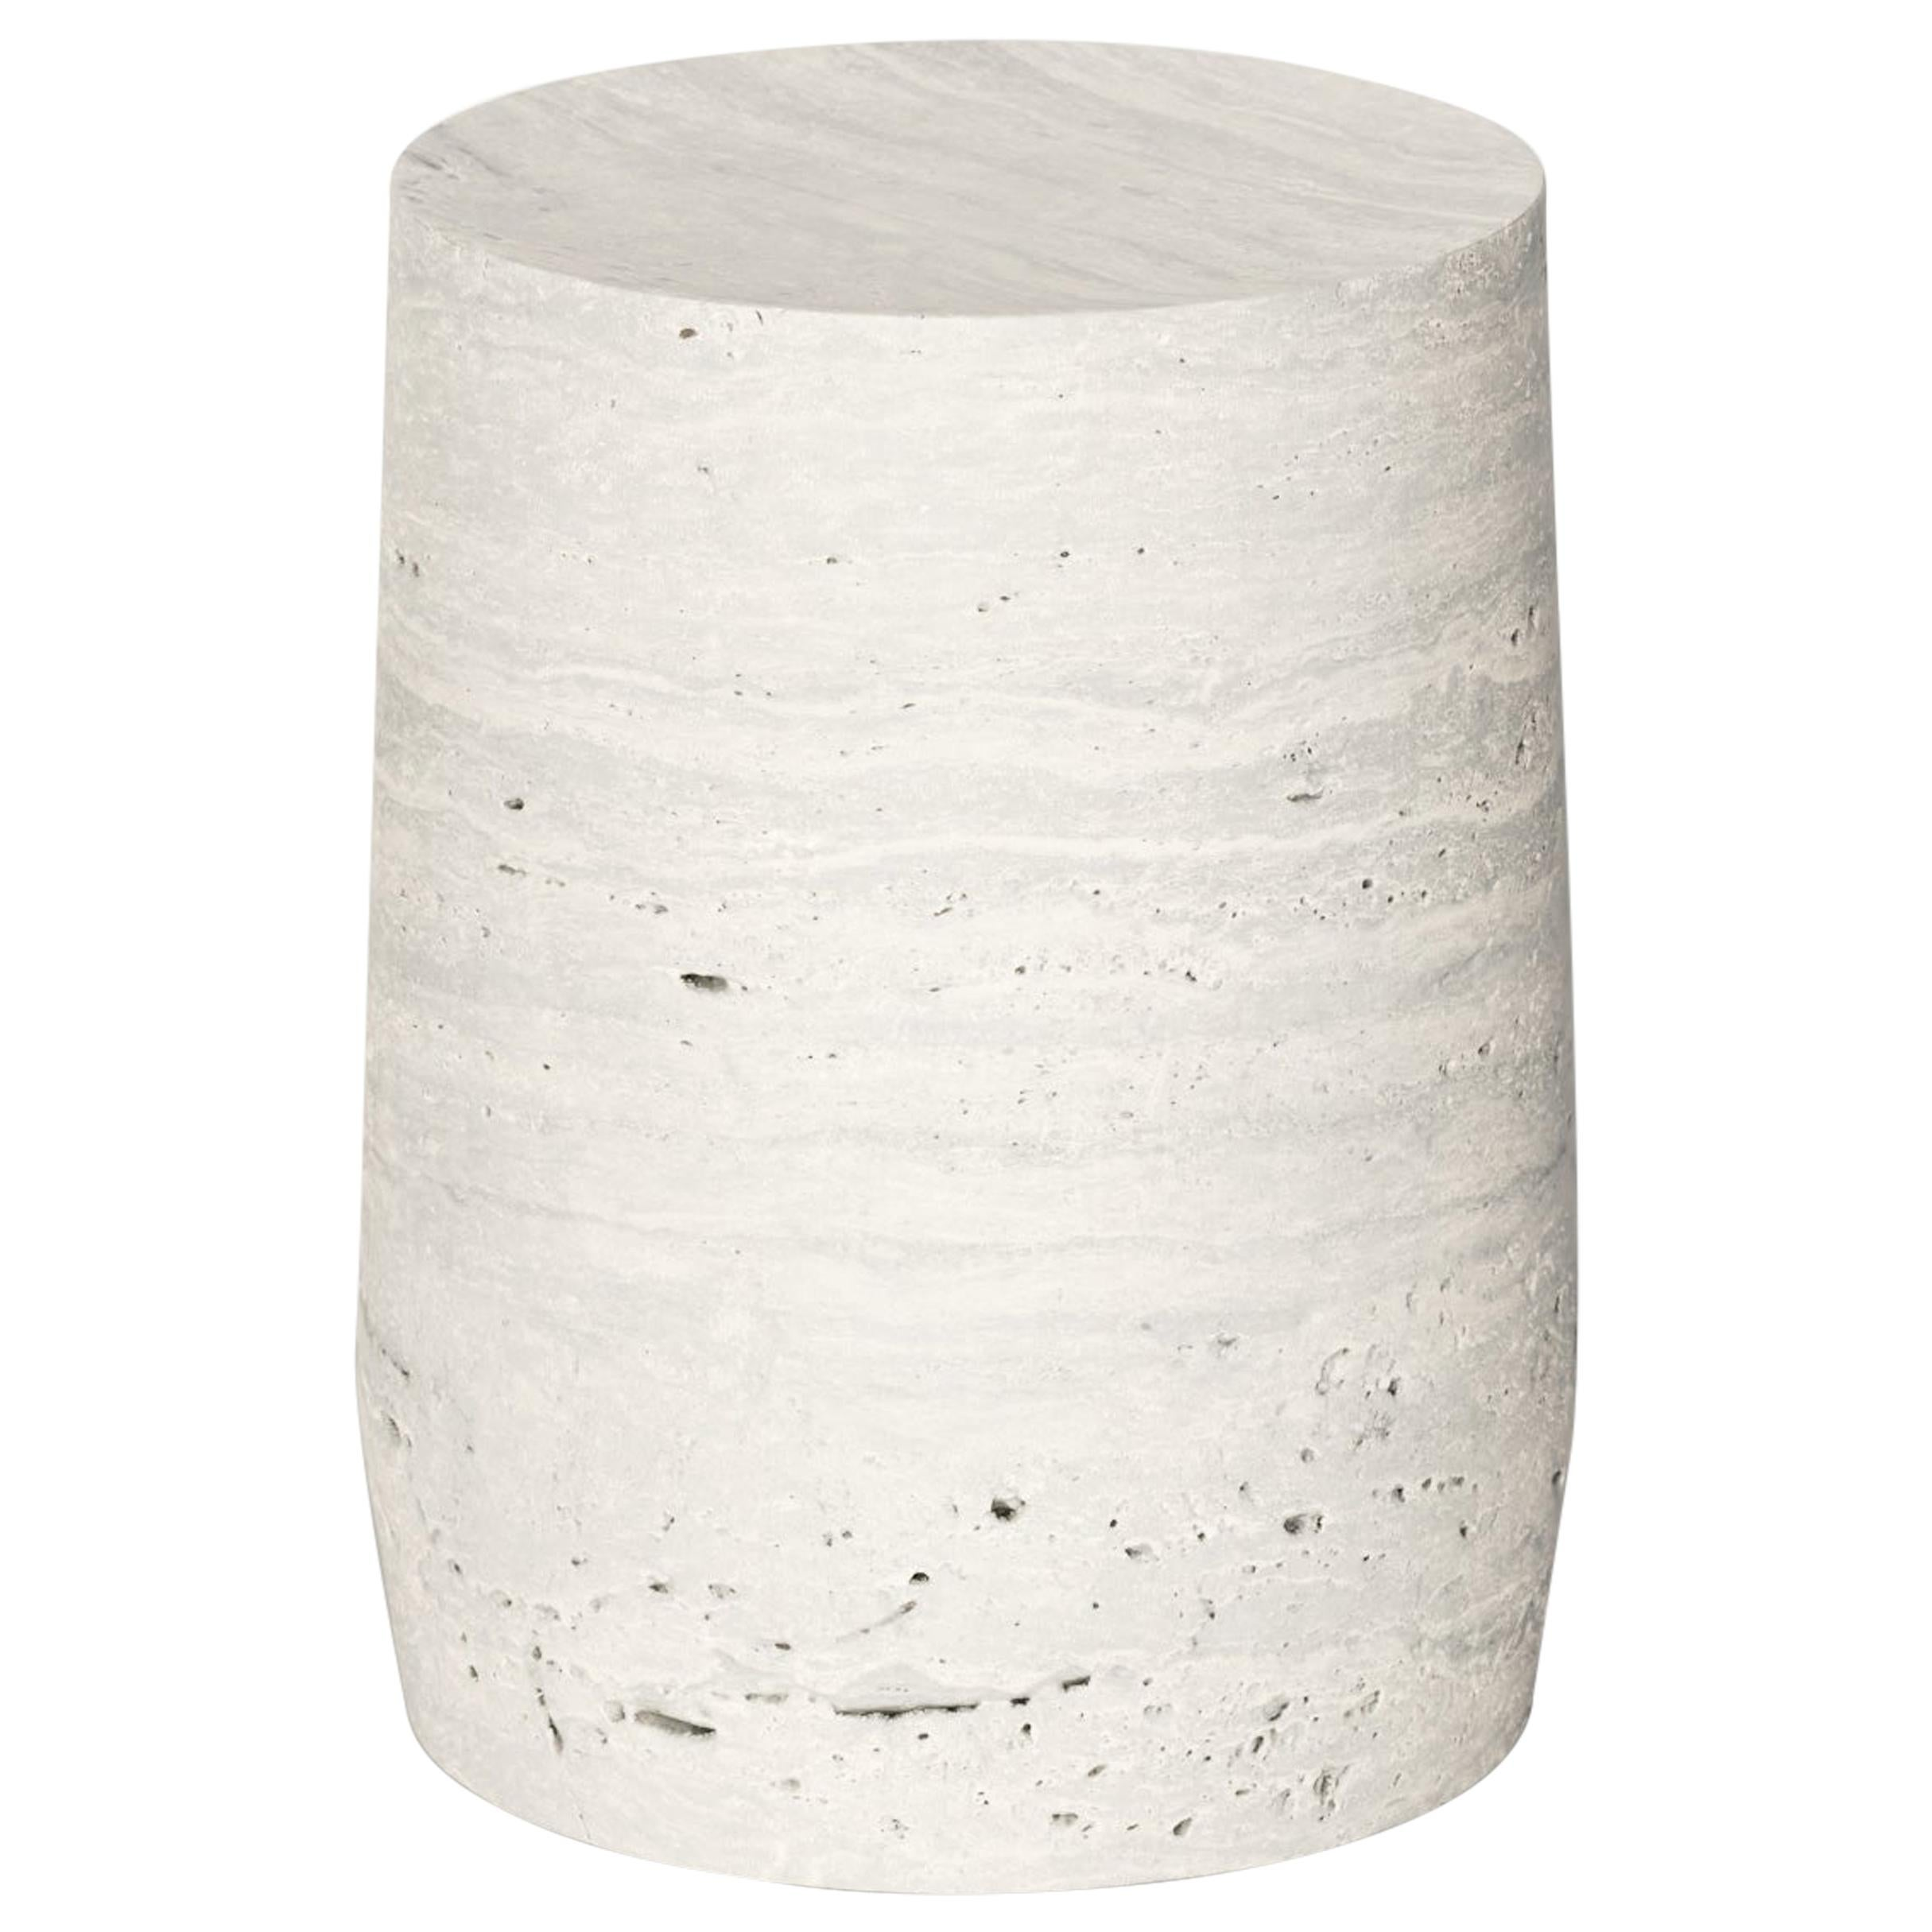 Timeless Side Table IV by Maria Osminina, Limited Edition